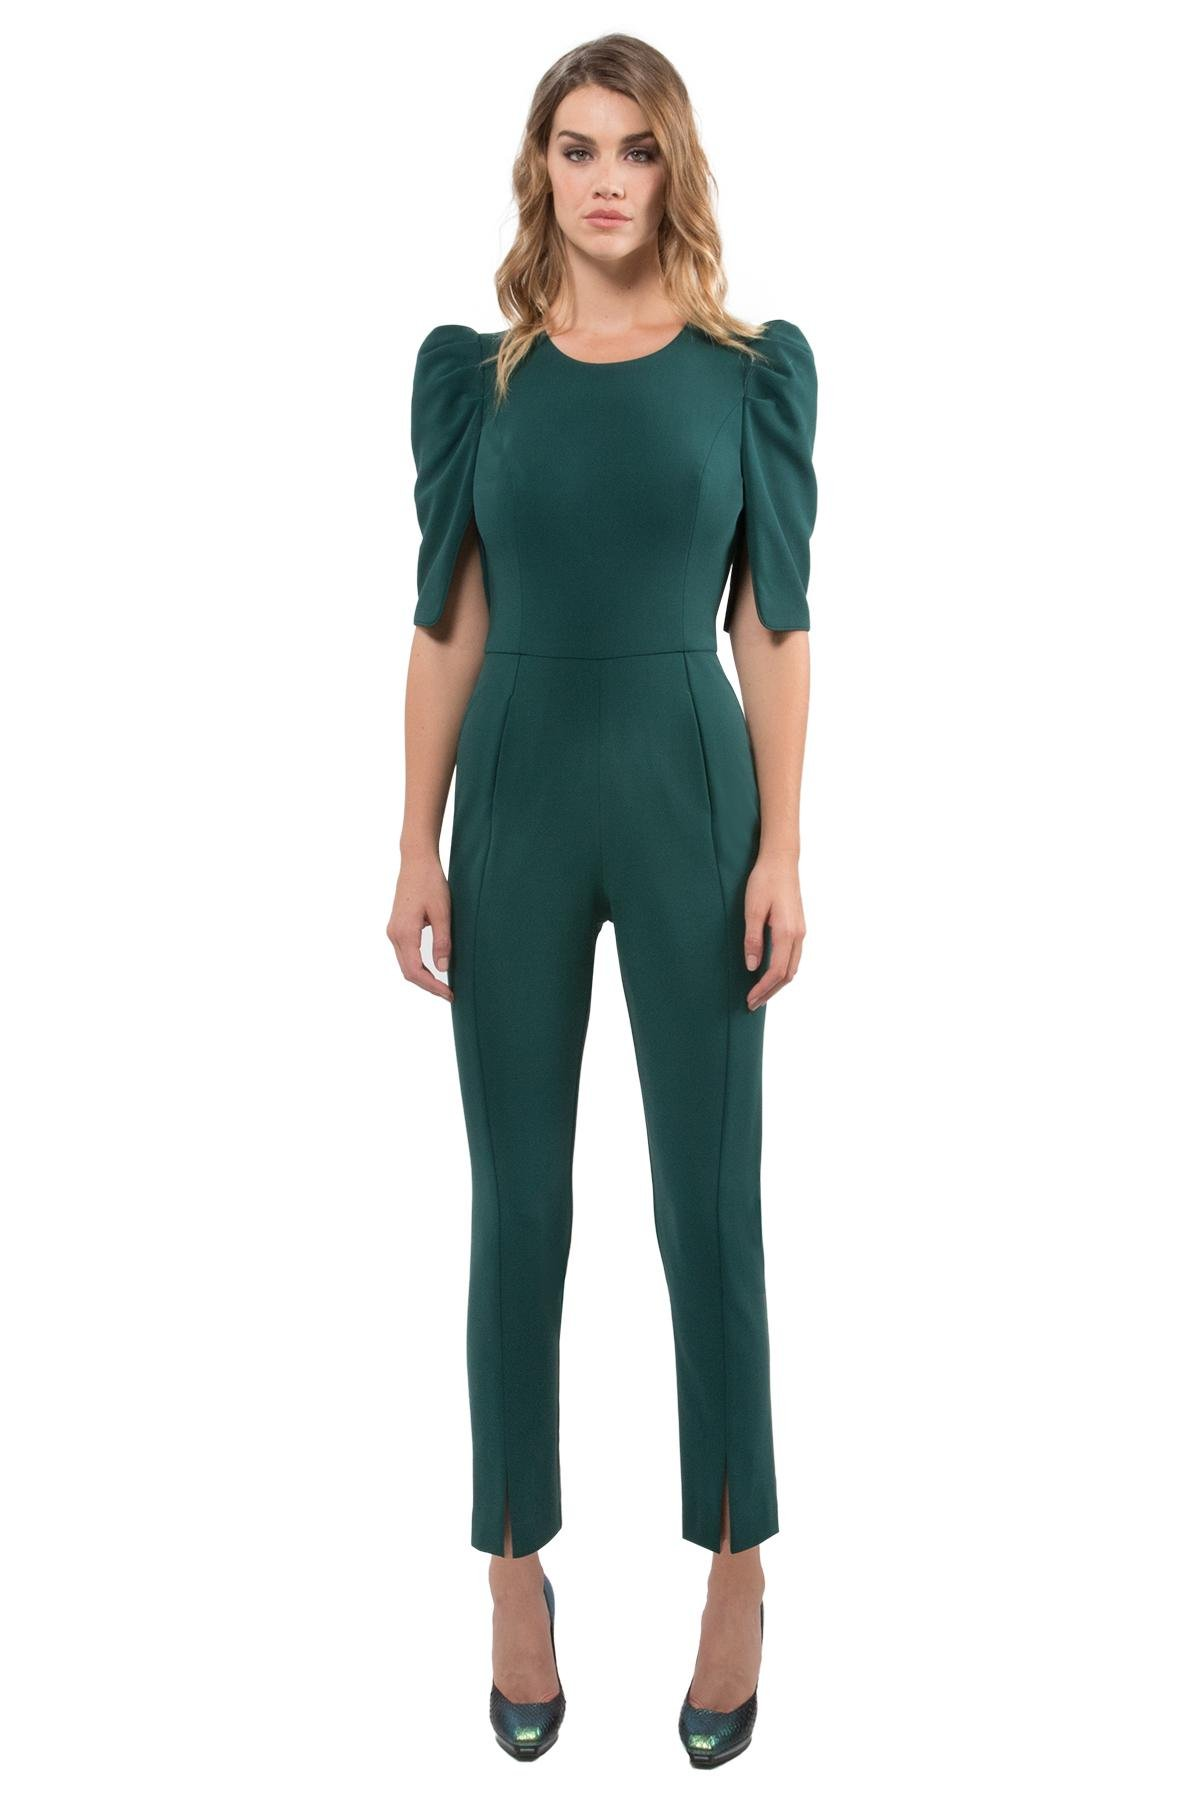 ddda15fd539 Black Halo Russo Jumpsuit in Green - Lyst